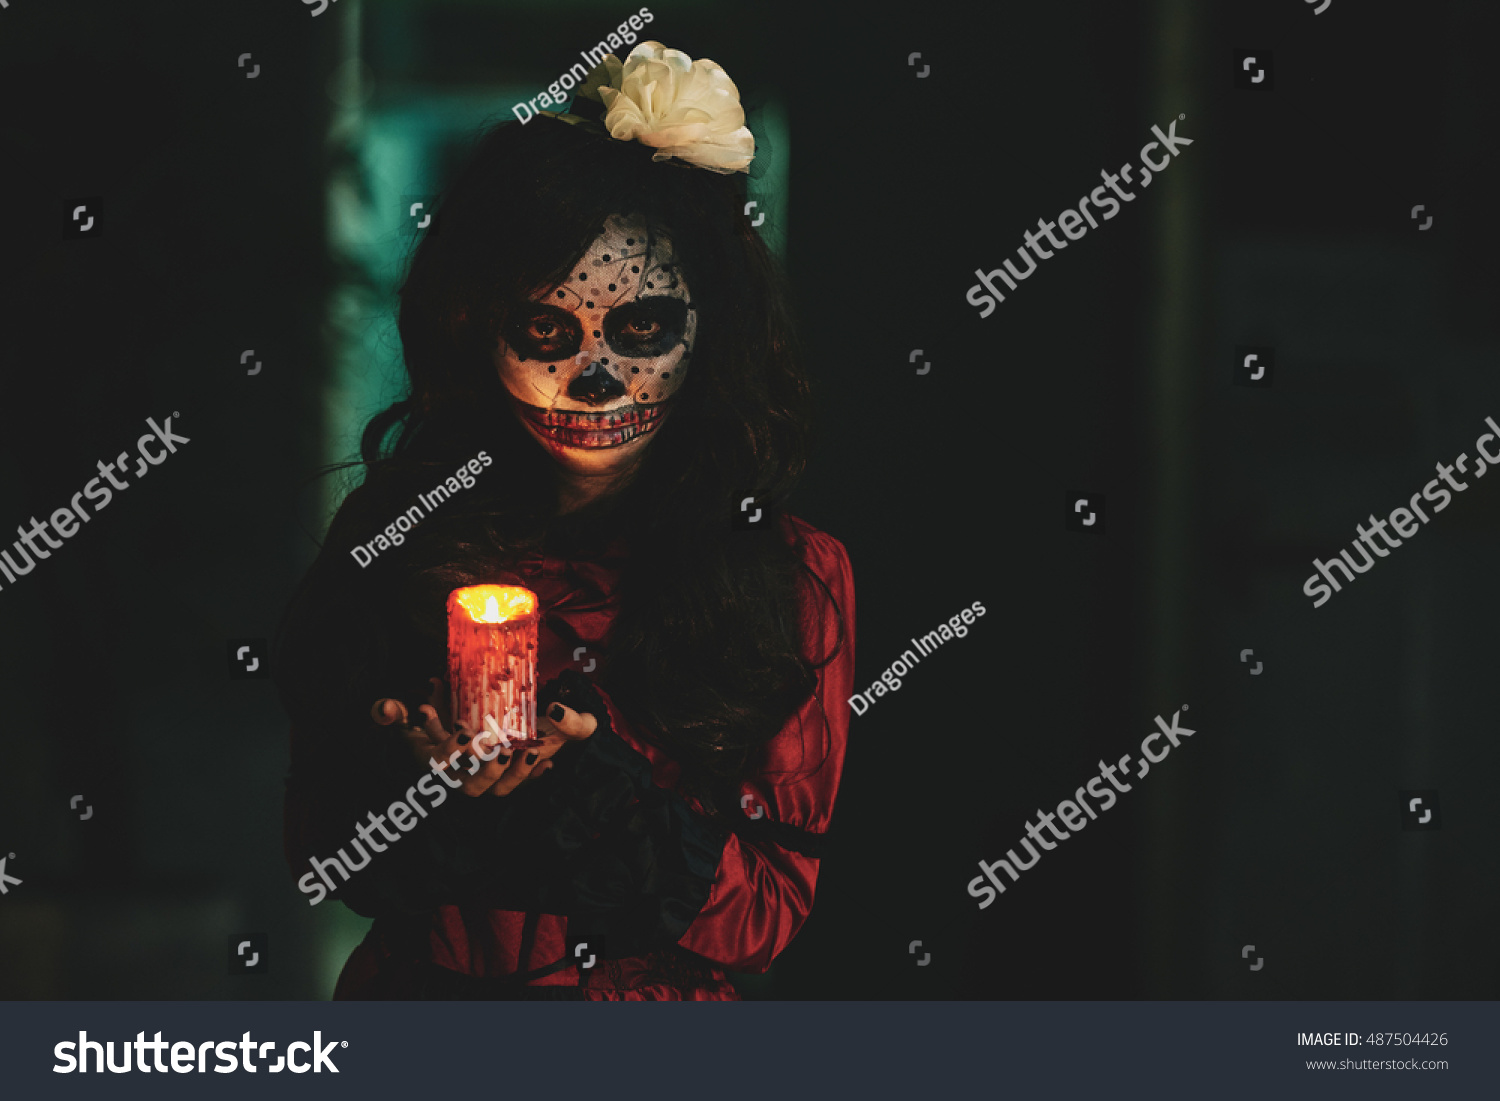 Halloween Girl Holding Glowing Candle Dark Stock Photo 487504426 ... for Holding Candle In The Dark  155fiz